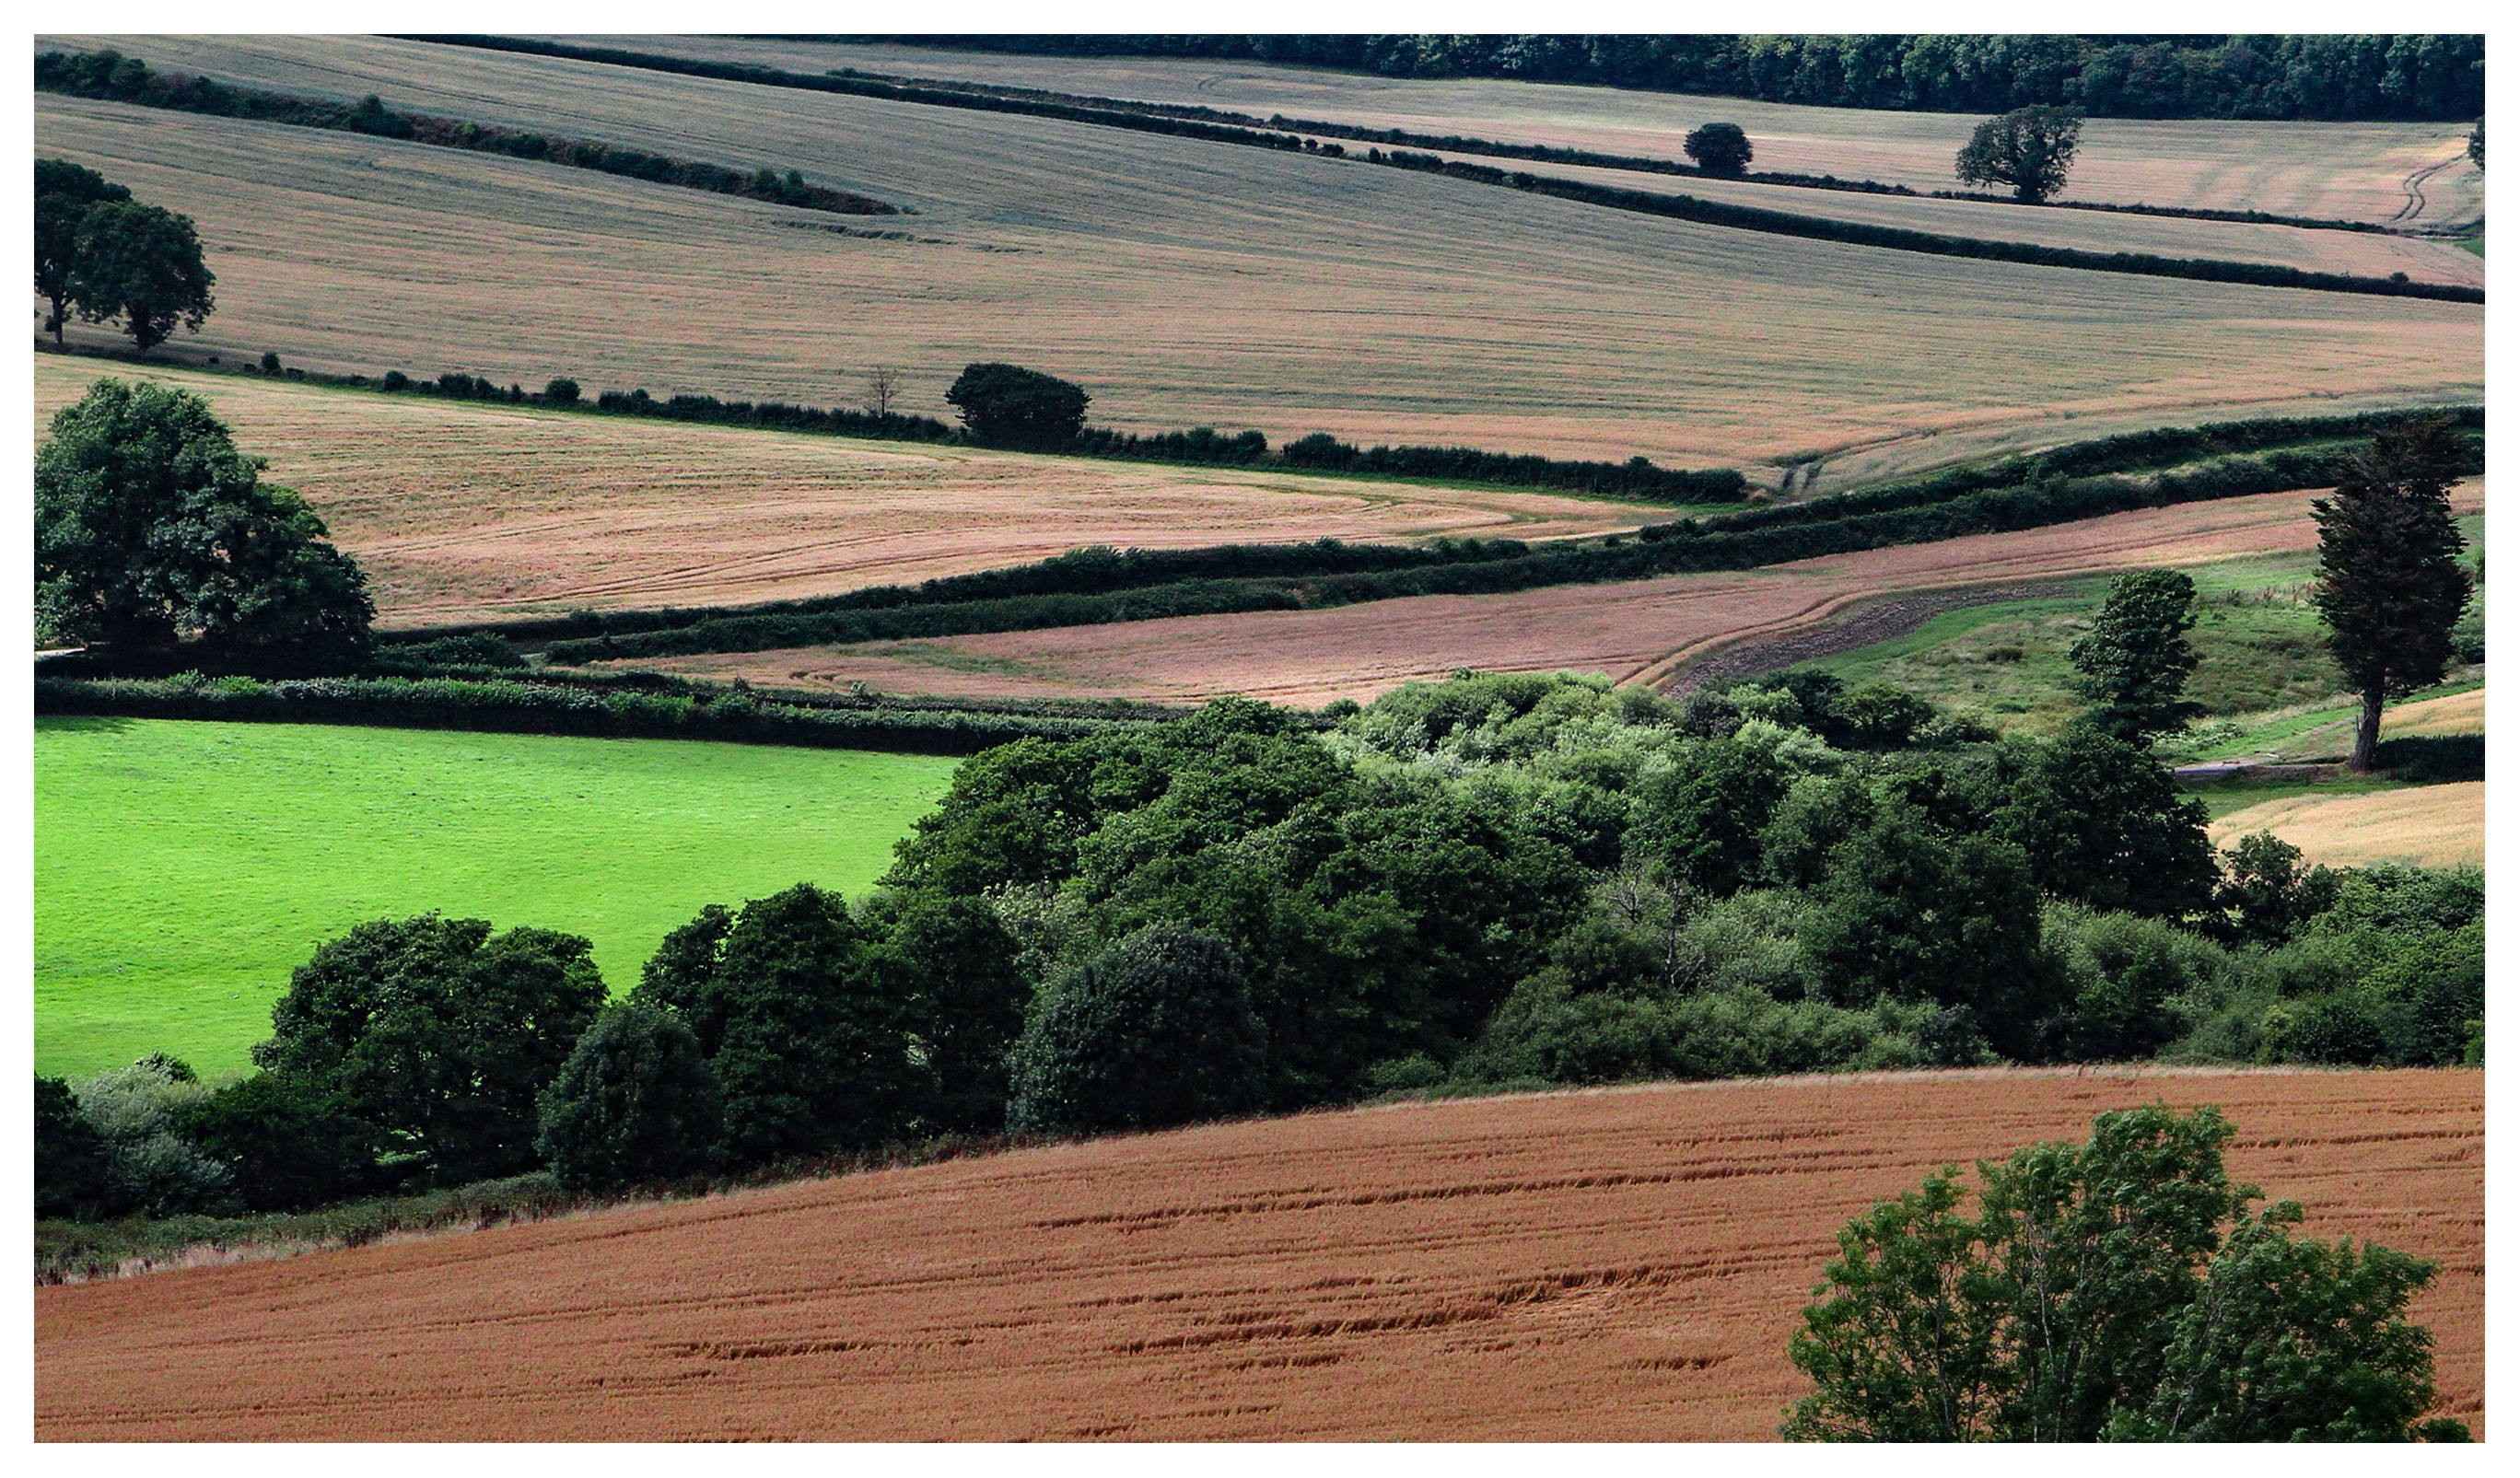 Summer in Dorset: Fieds at Cerne Abbas, village of the Cerne Abbas Giant